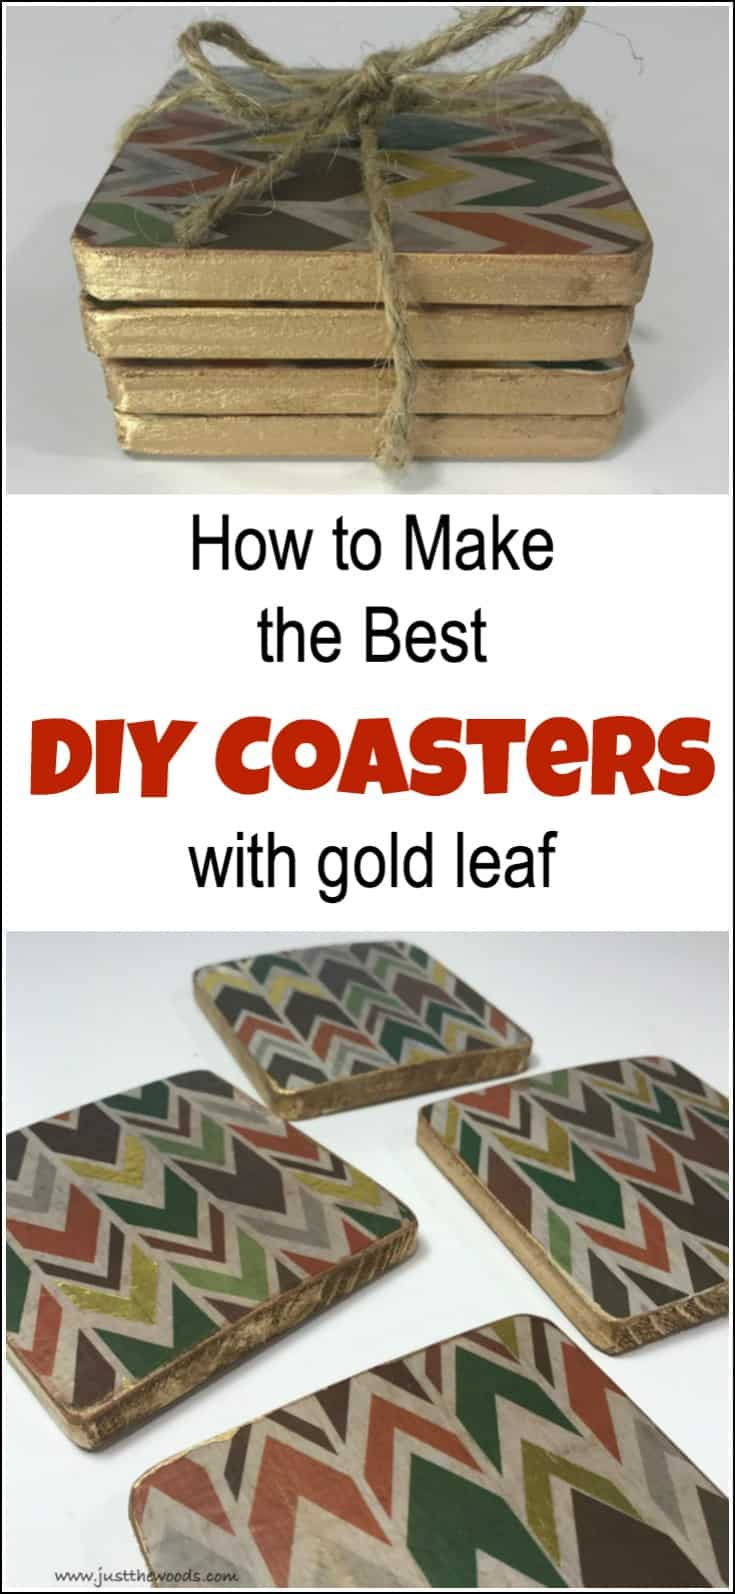 How To Make The Best DIY Coasters With Gold Leaf - Create coasters from photos